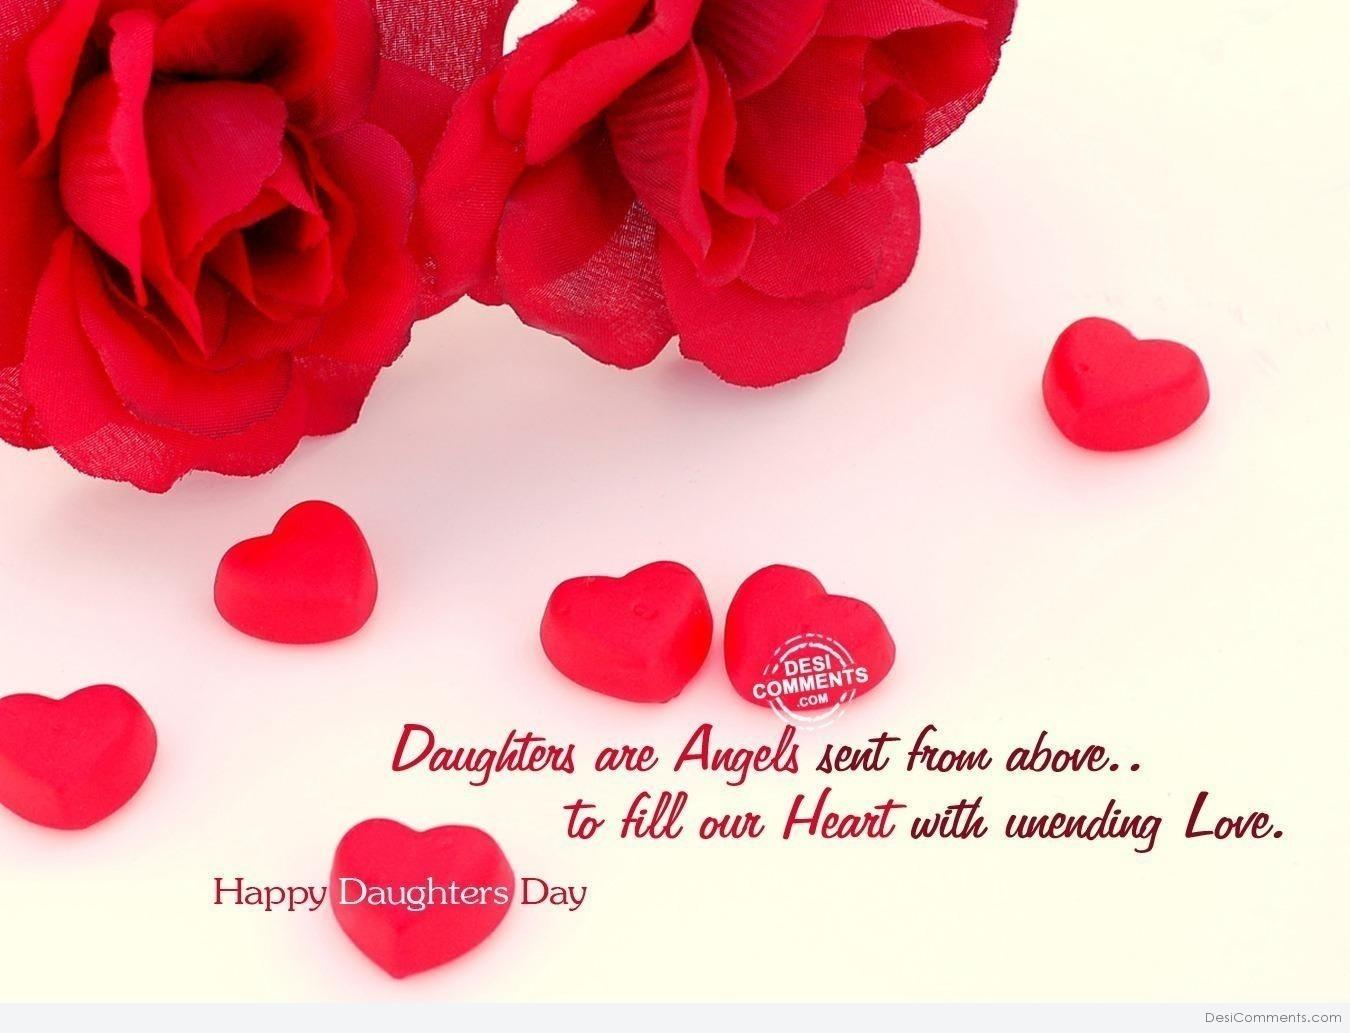 Daughter's Day Pictures, Images, Graphics - Page 4